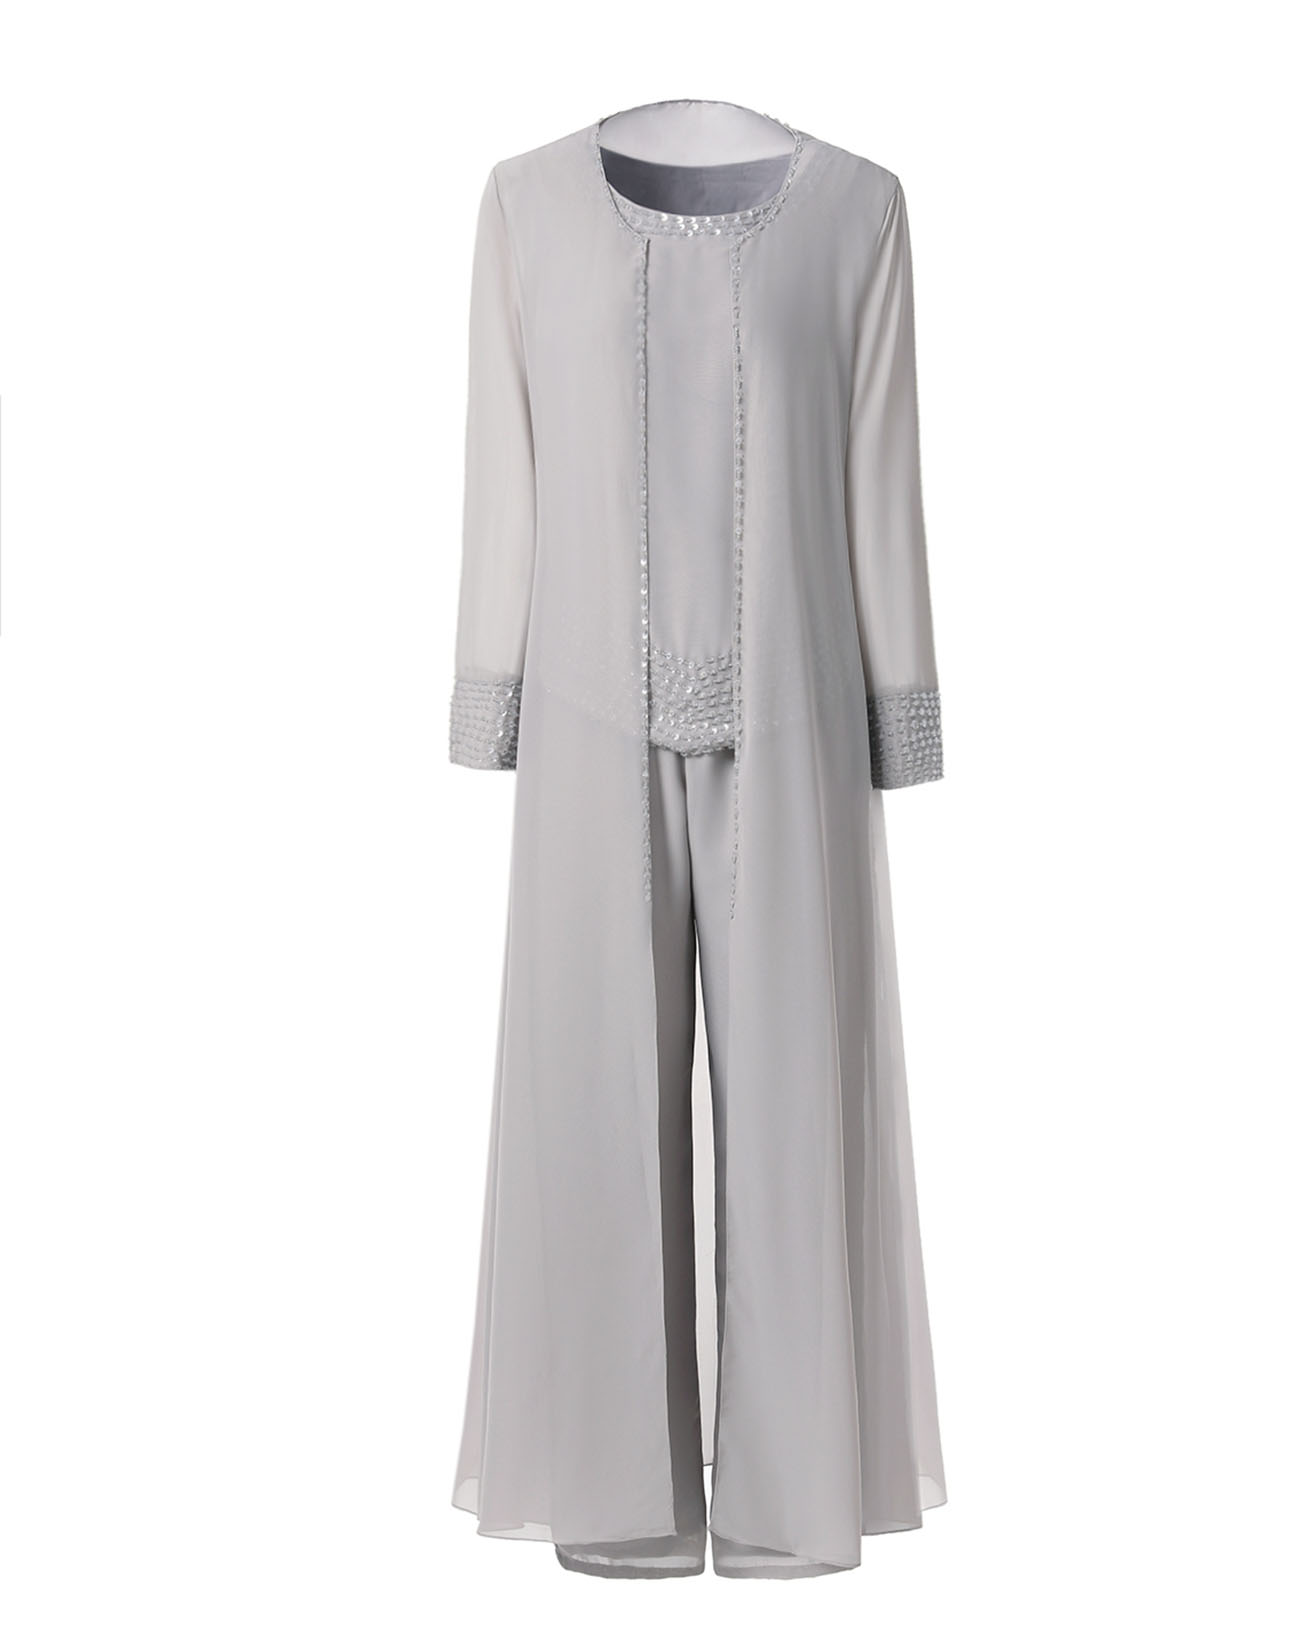 3 Three Pieces Beading Mother Of The Bride Dress Pants Suit With Ankle Length Jacket Outfit For Wedding Muslim Groom SL-M08